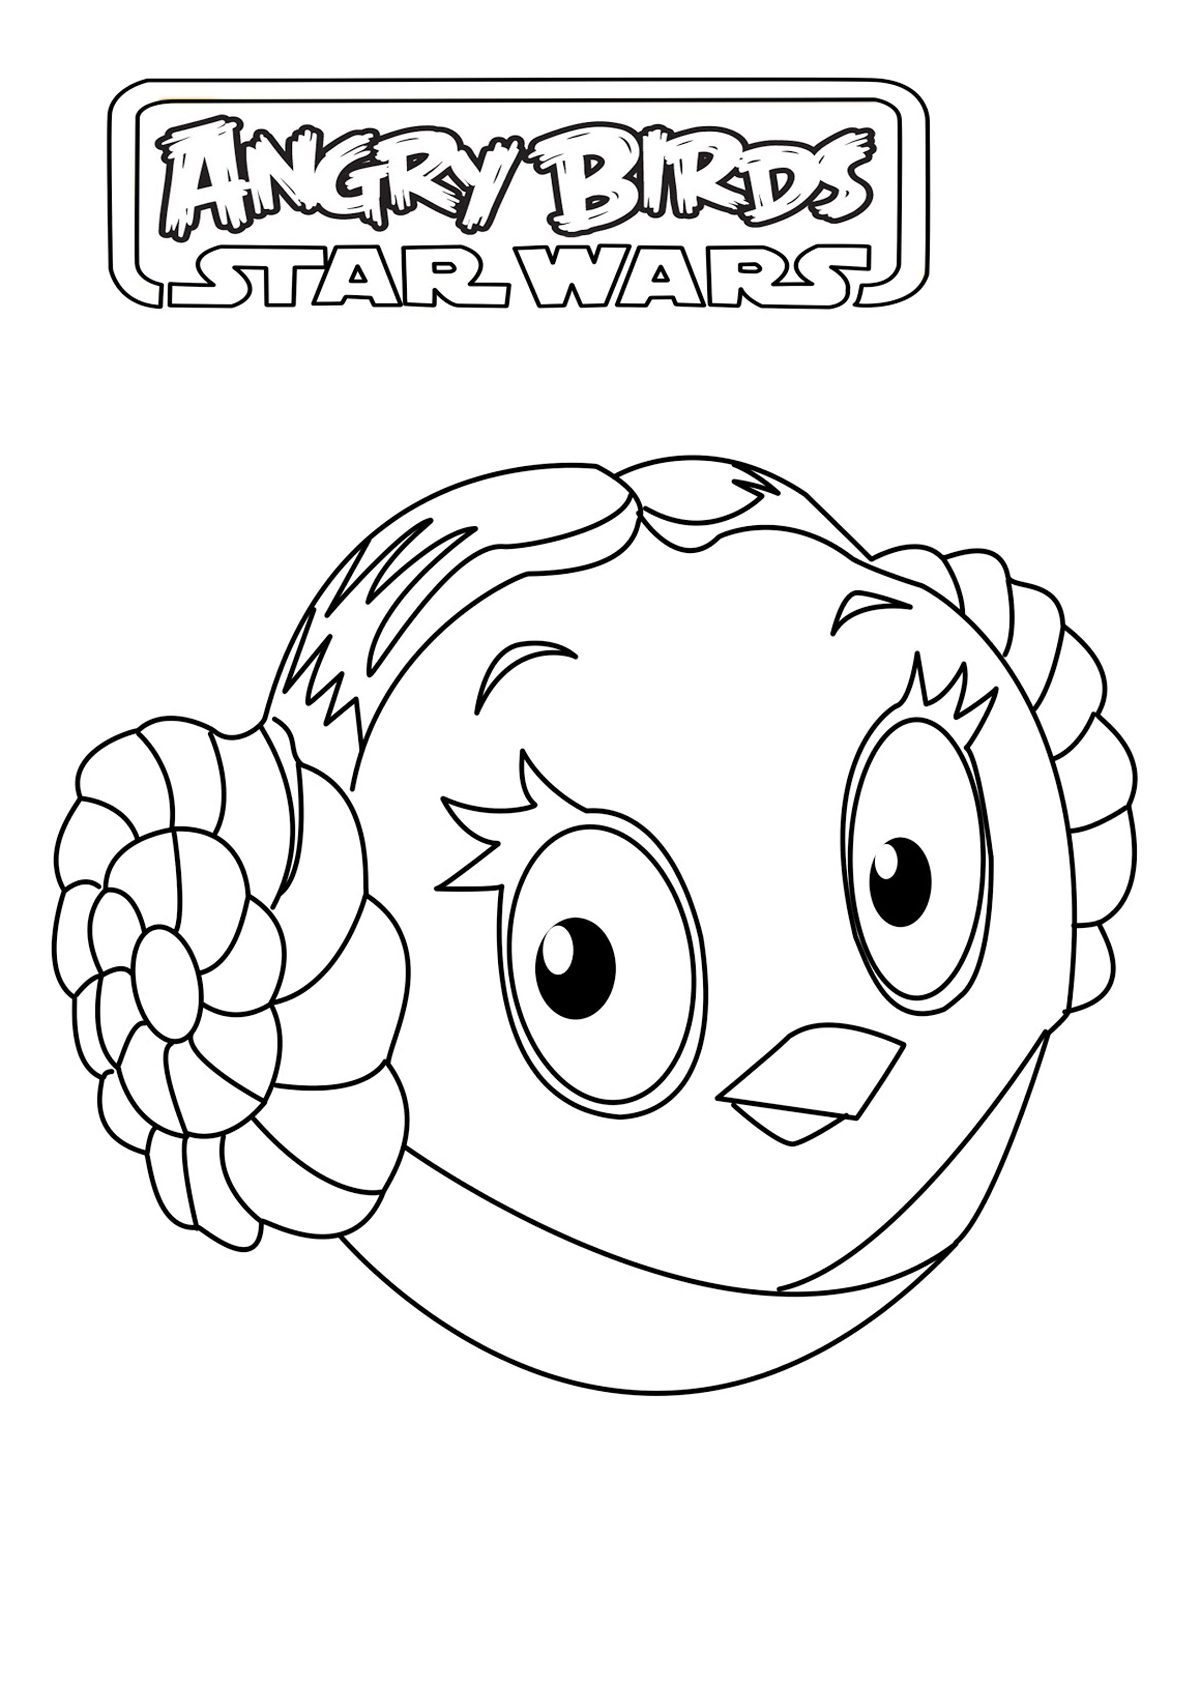 angry bird star wars coloring pages angry birds star wars coloring pages printable bird star coloring angry wars pages